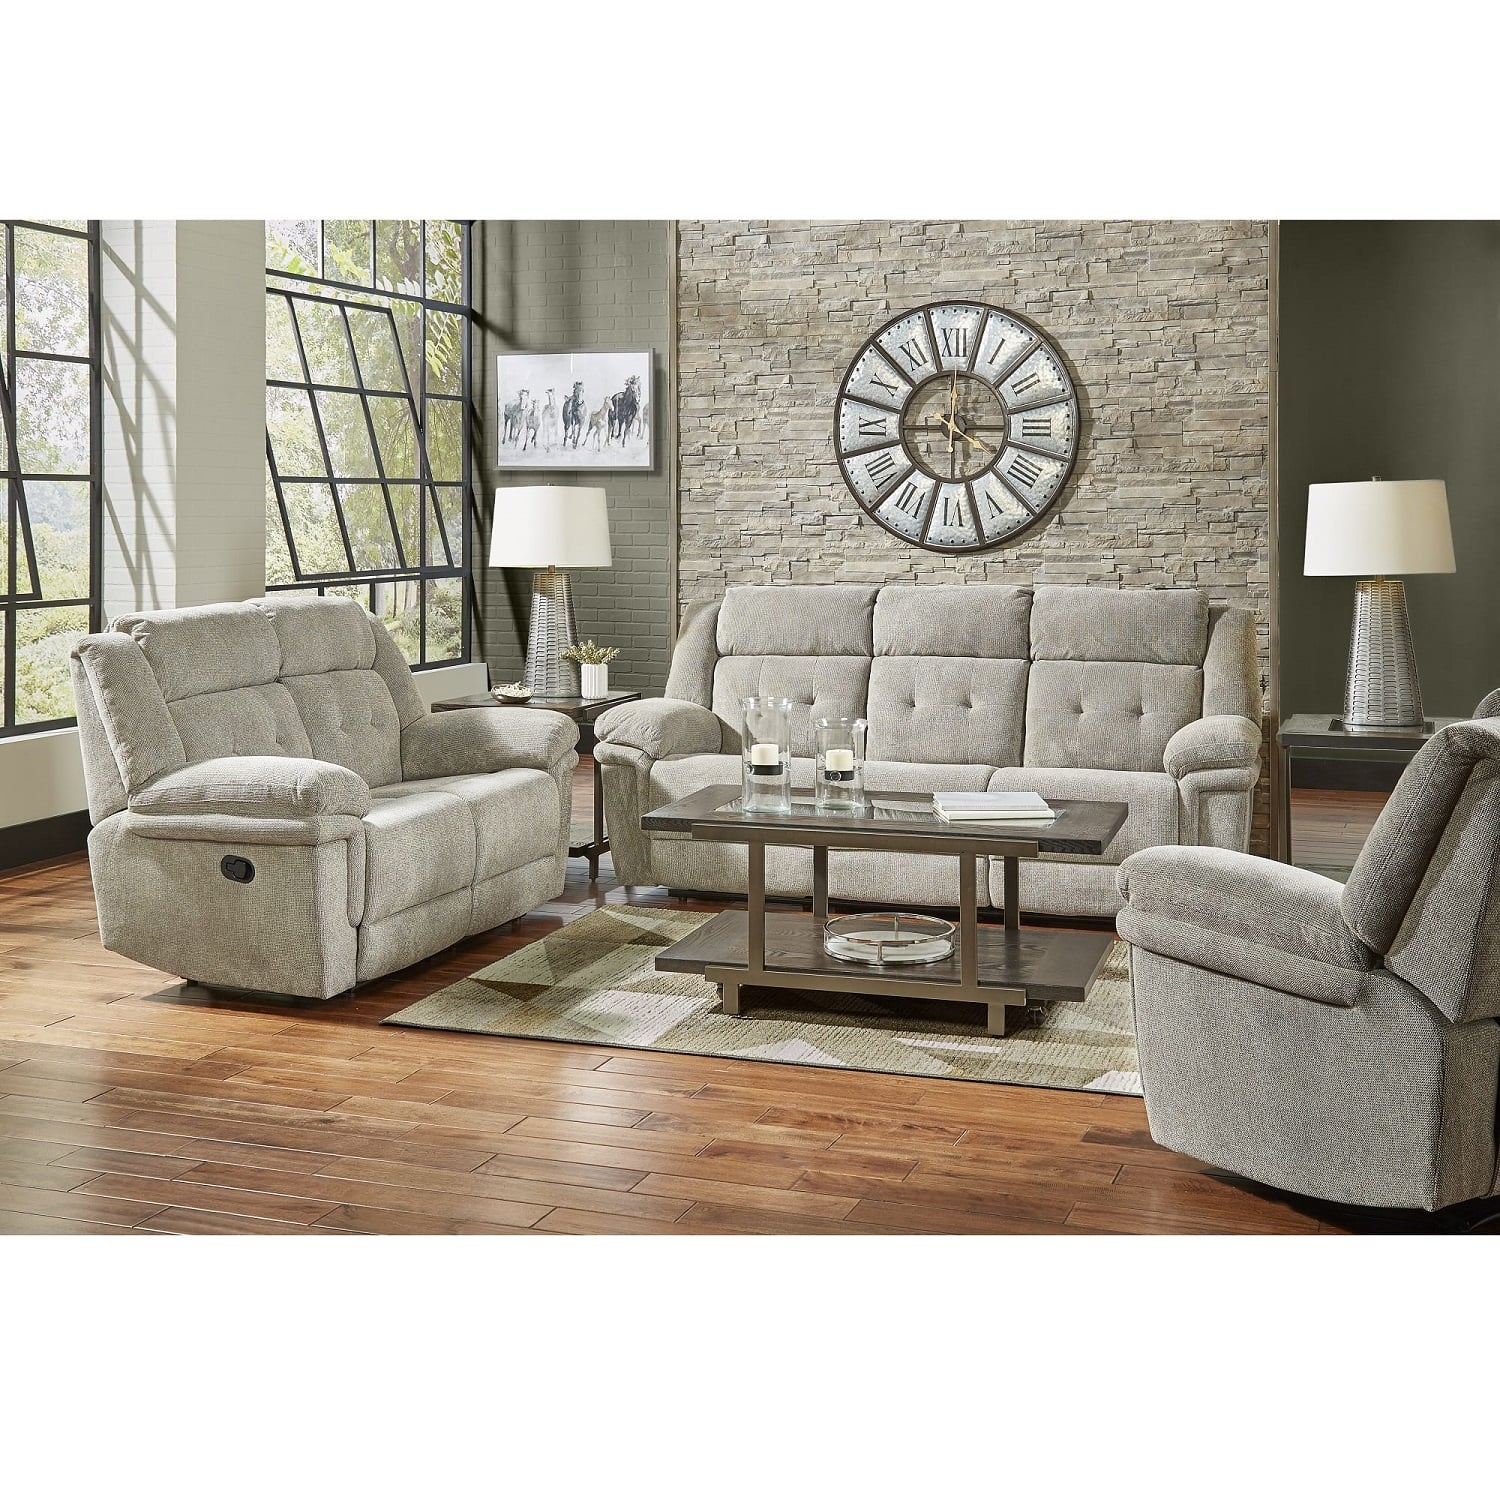 3 Piece Silas Reclining Living Room Collection